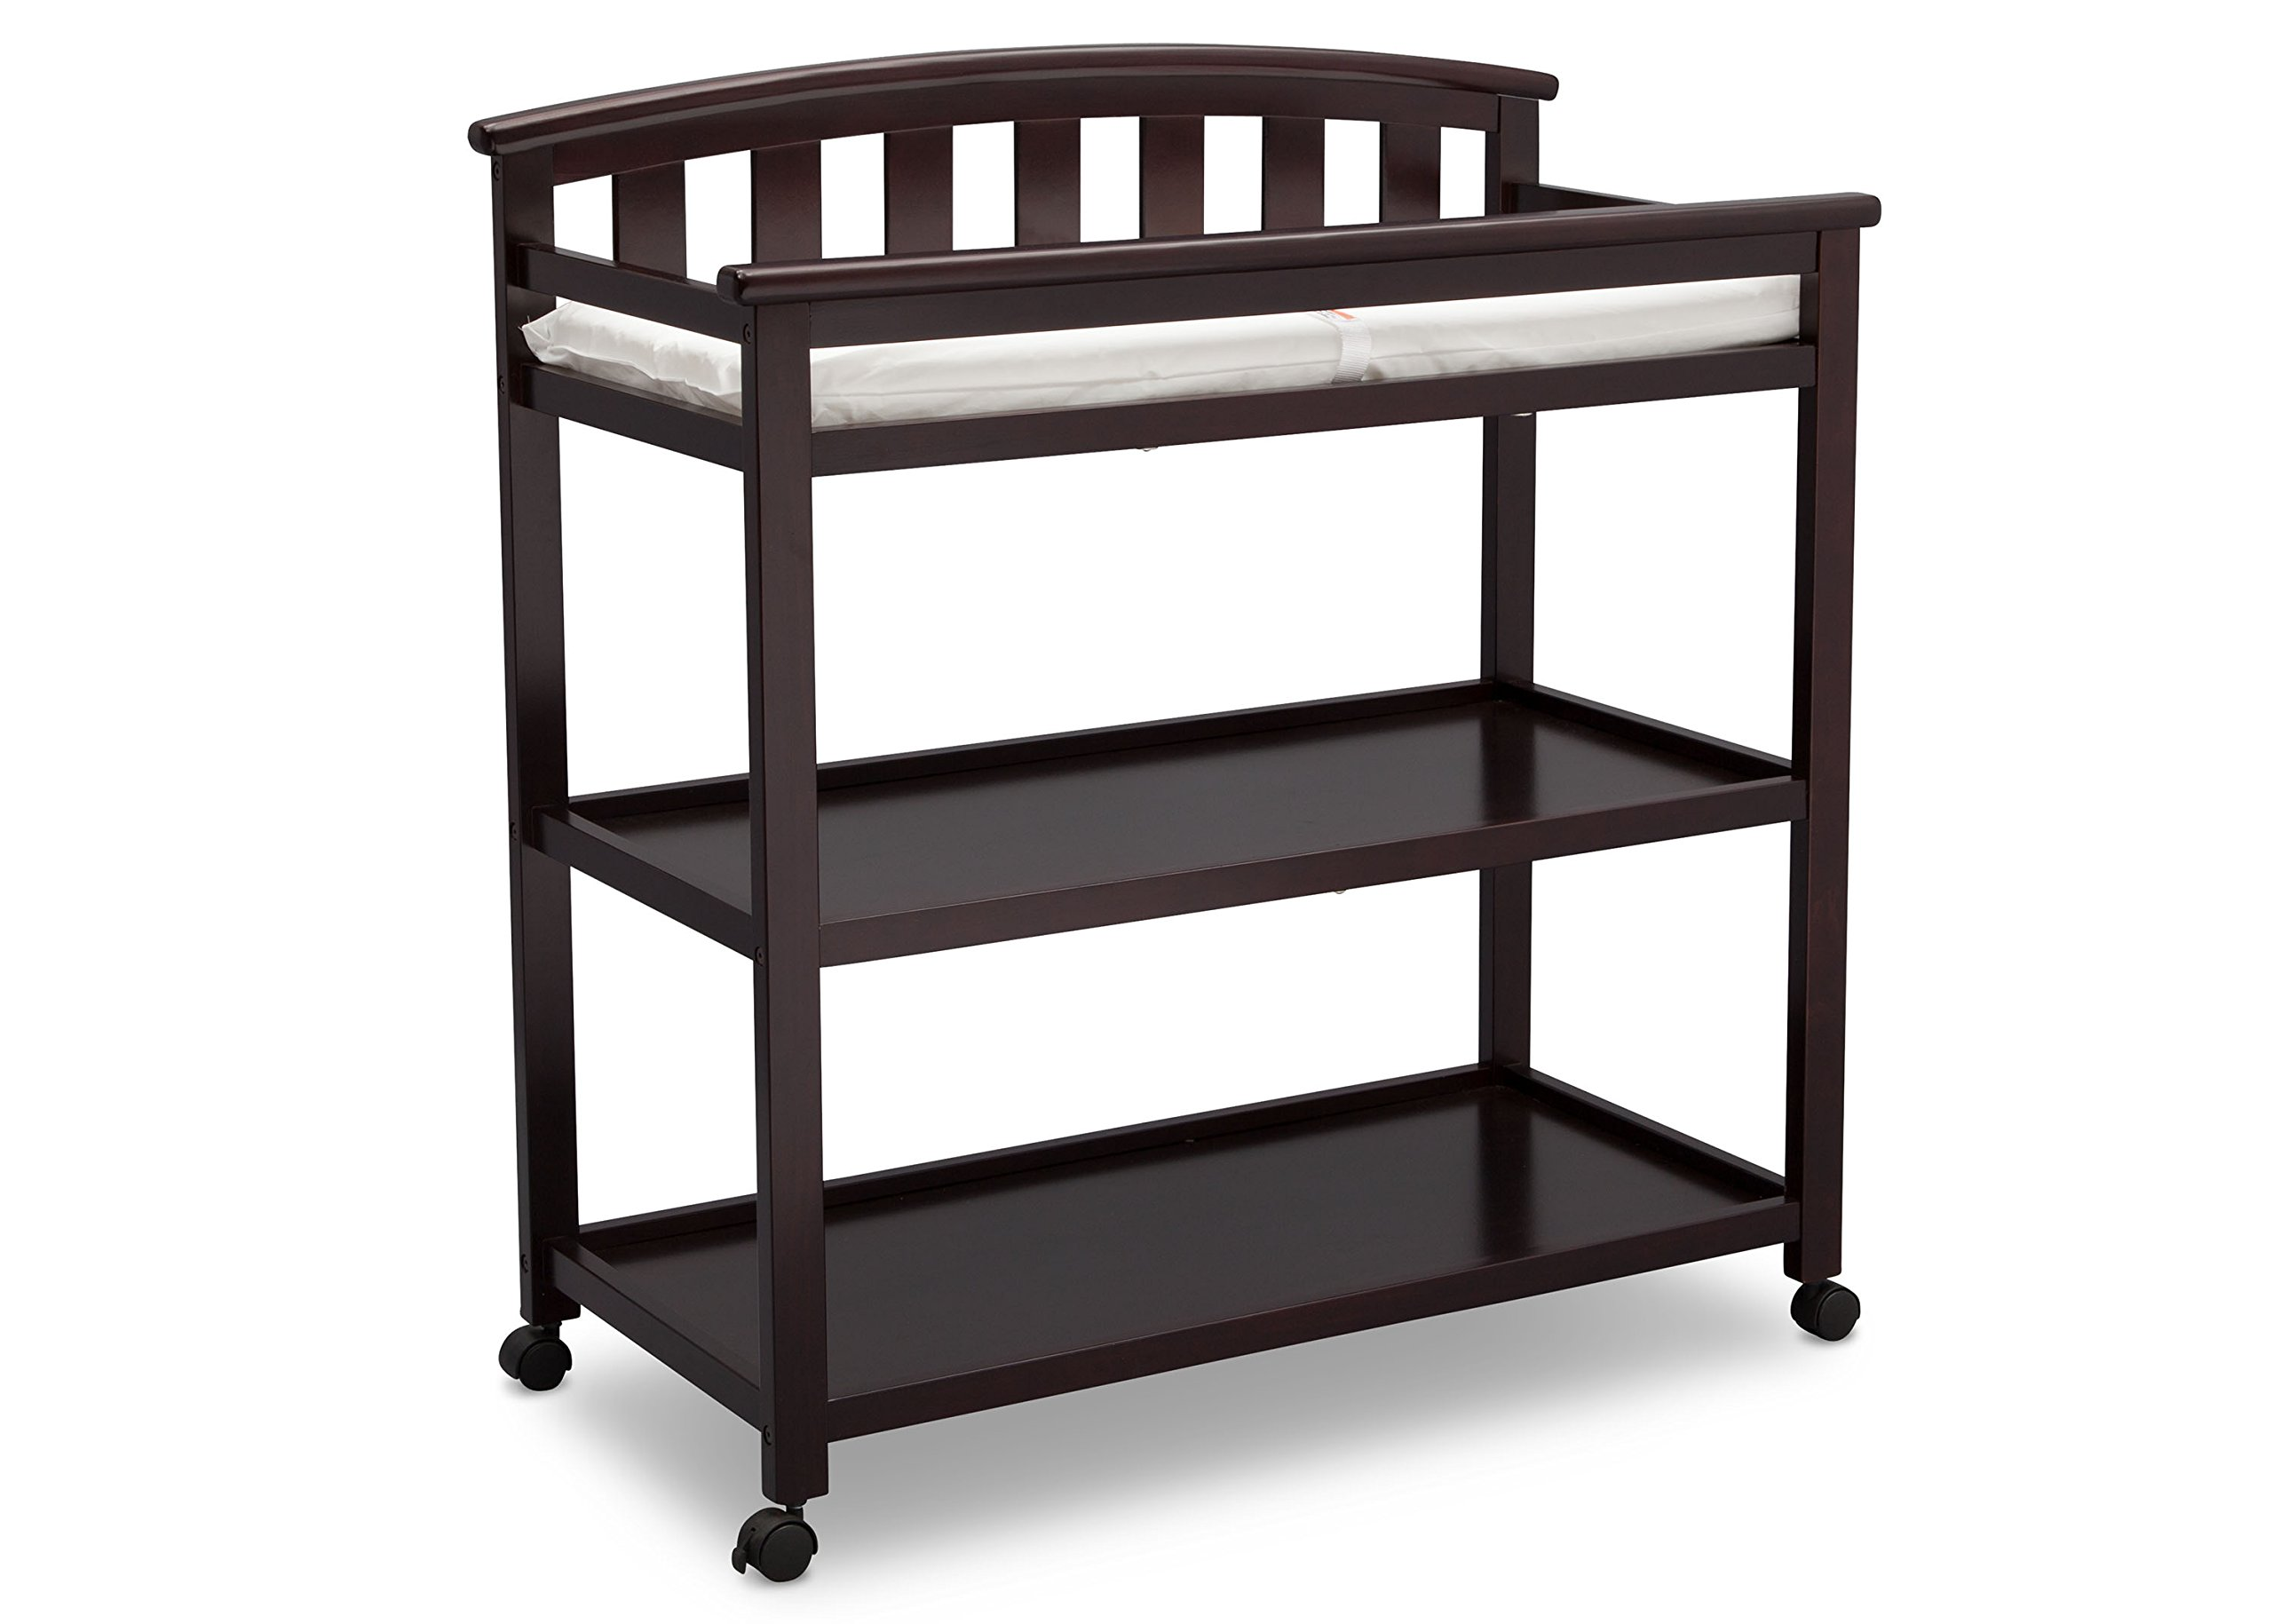 Delta Children Arch Top Changing Table with Casters, Dark Chocolate